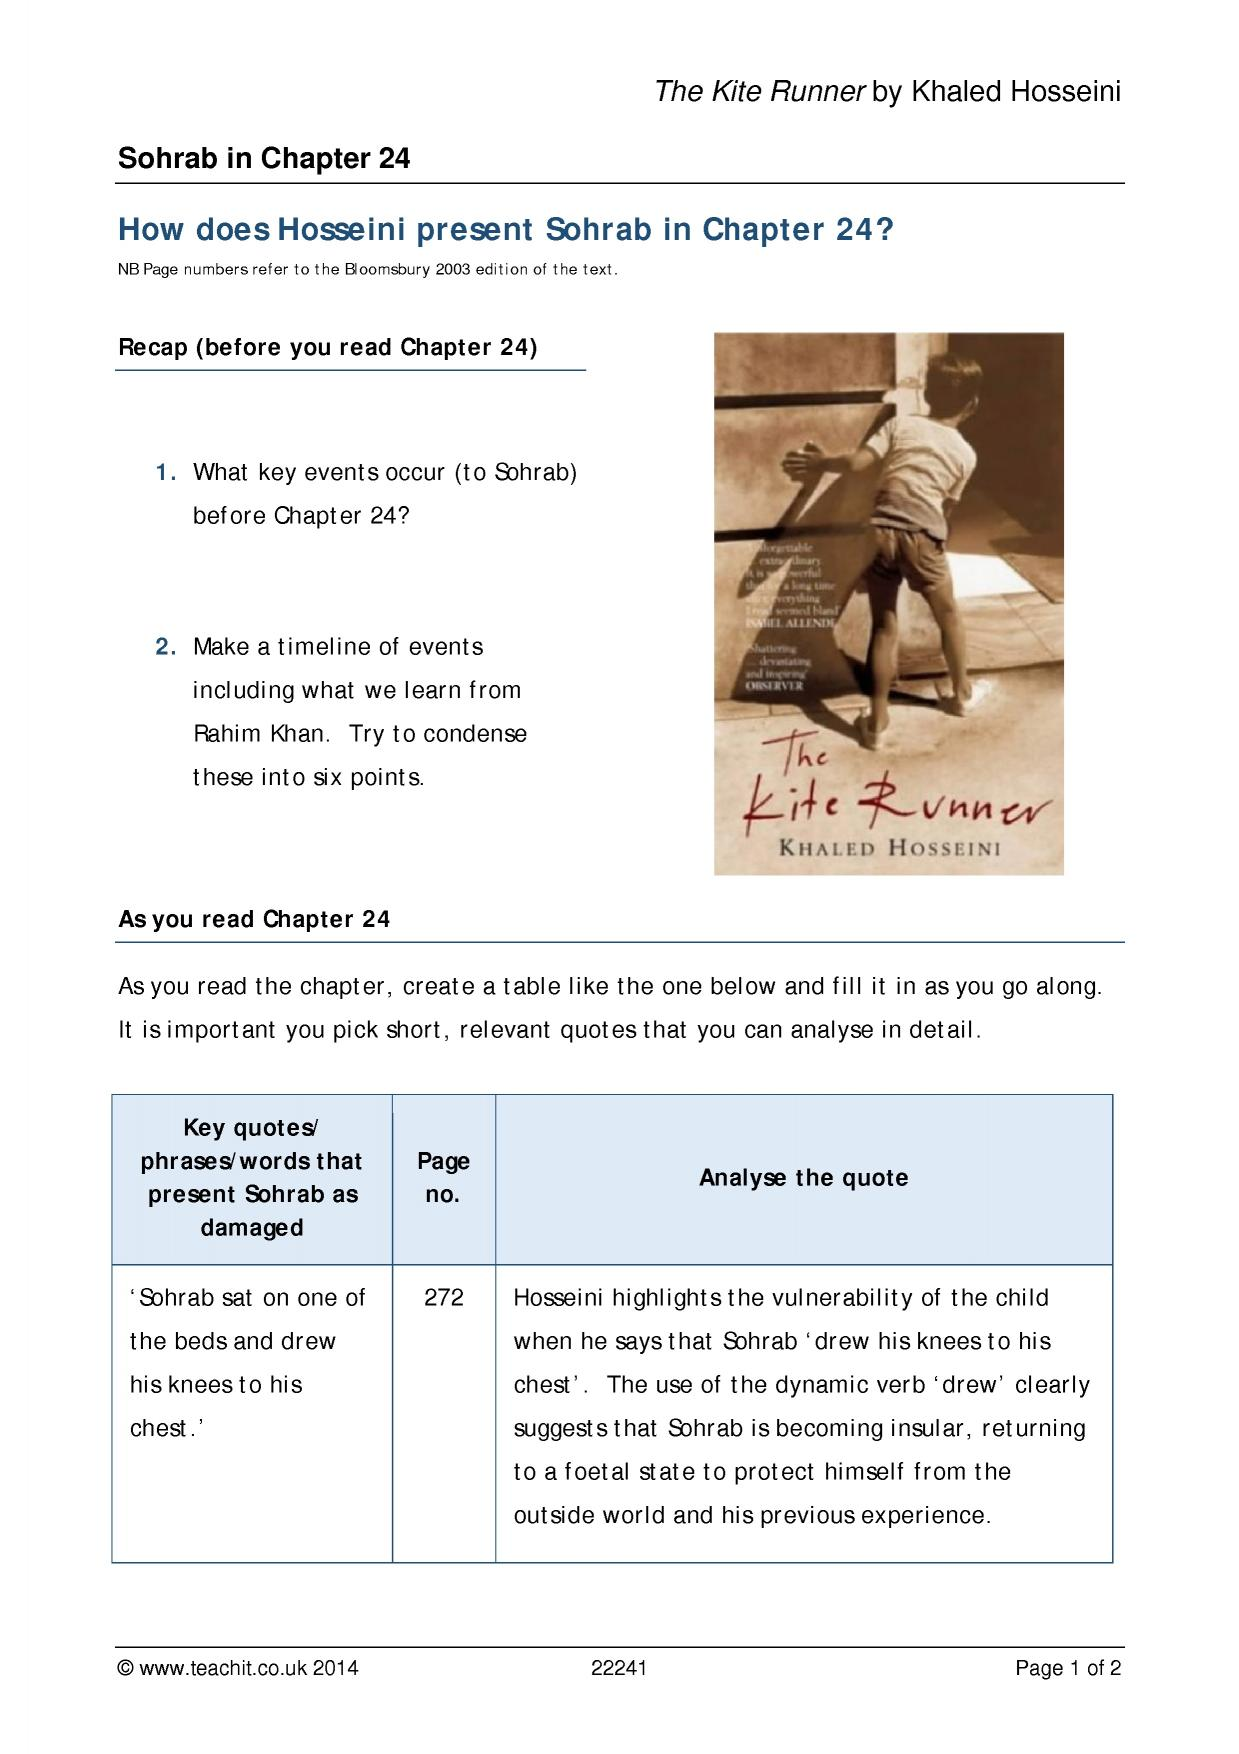 kite runner essay copy Tsotsi vs the kite runner essay tsotsi vs the kite runner in the novel, the kite runner written by khaled hosseini and the film tsotsi written by.